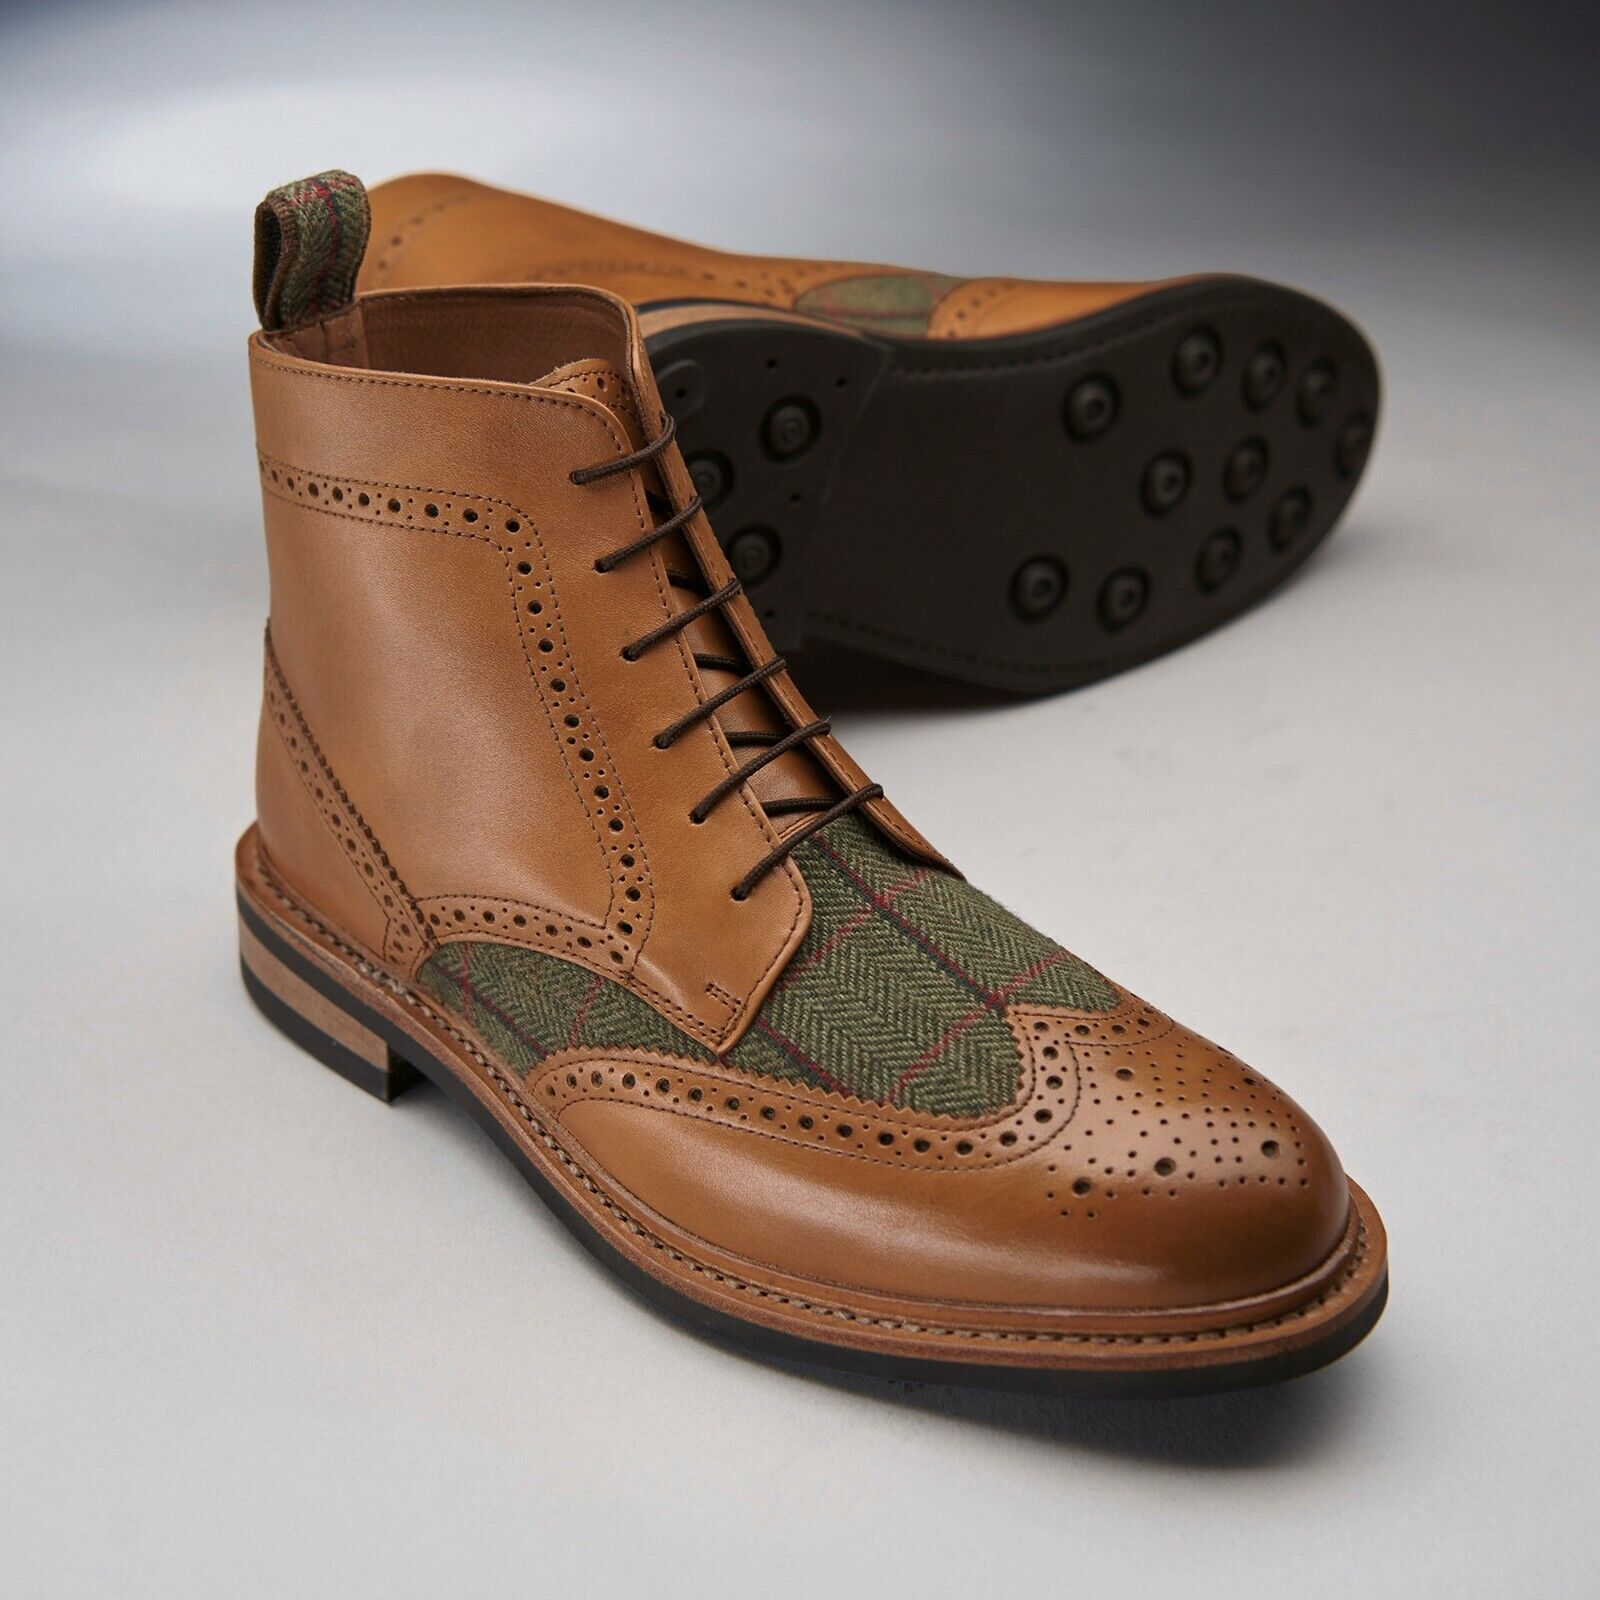 Details about Samuel Windsor Mens Leather Boots Tweed Brogue Lace Up Rubber Sole UK Sizes 5 14